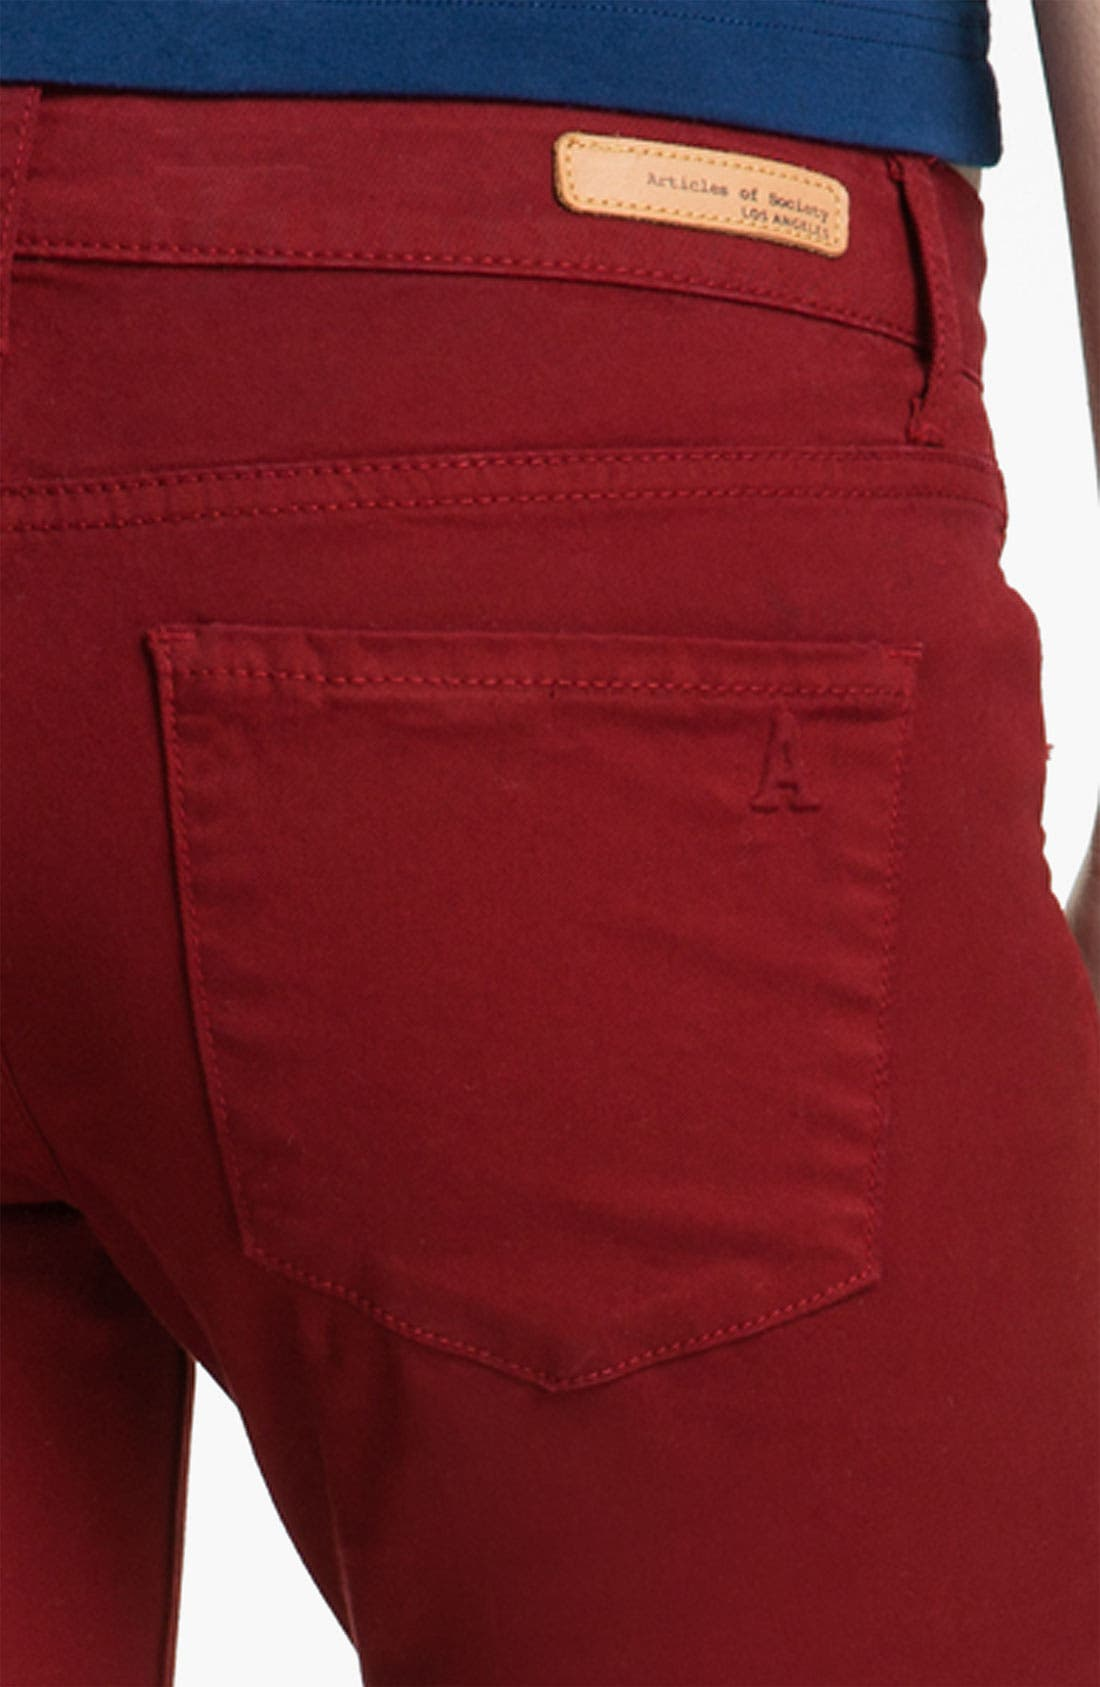 Alternate Image 3  - Articles of Society 'Mya' Skinny Jeans (Scarlet) (Juniors)